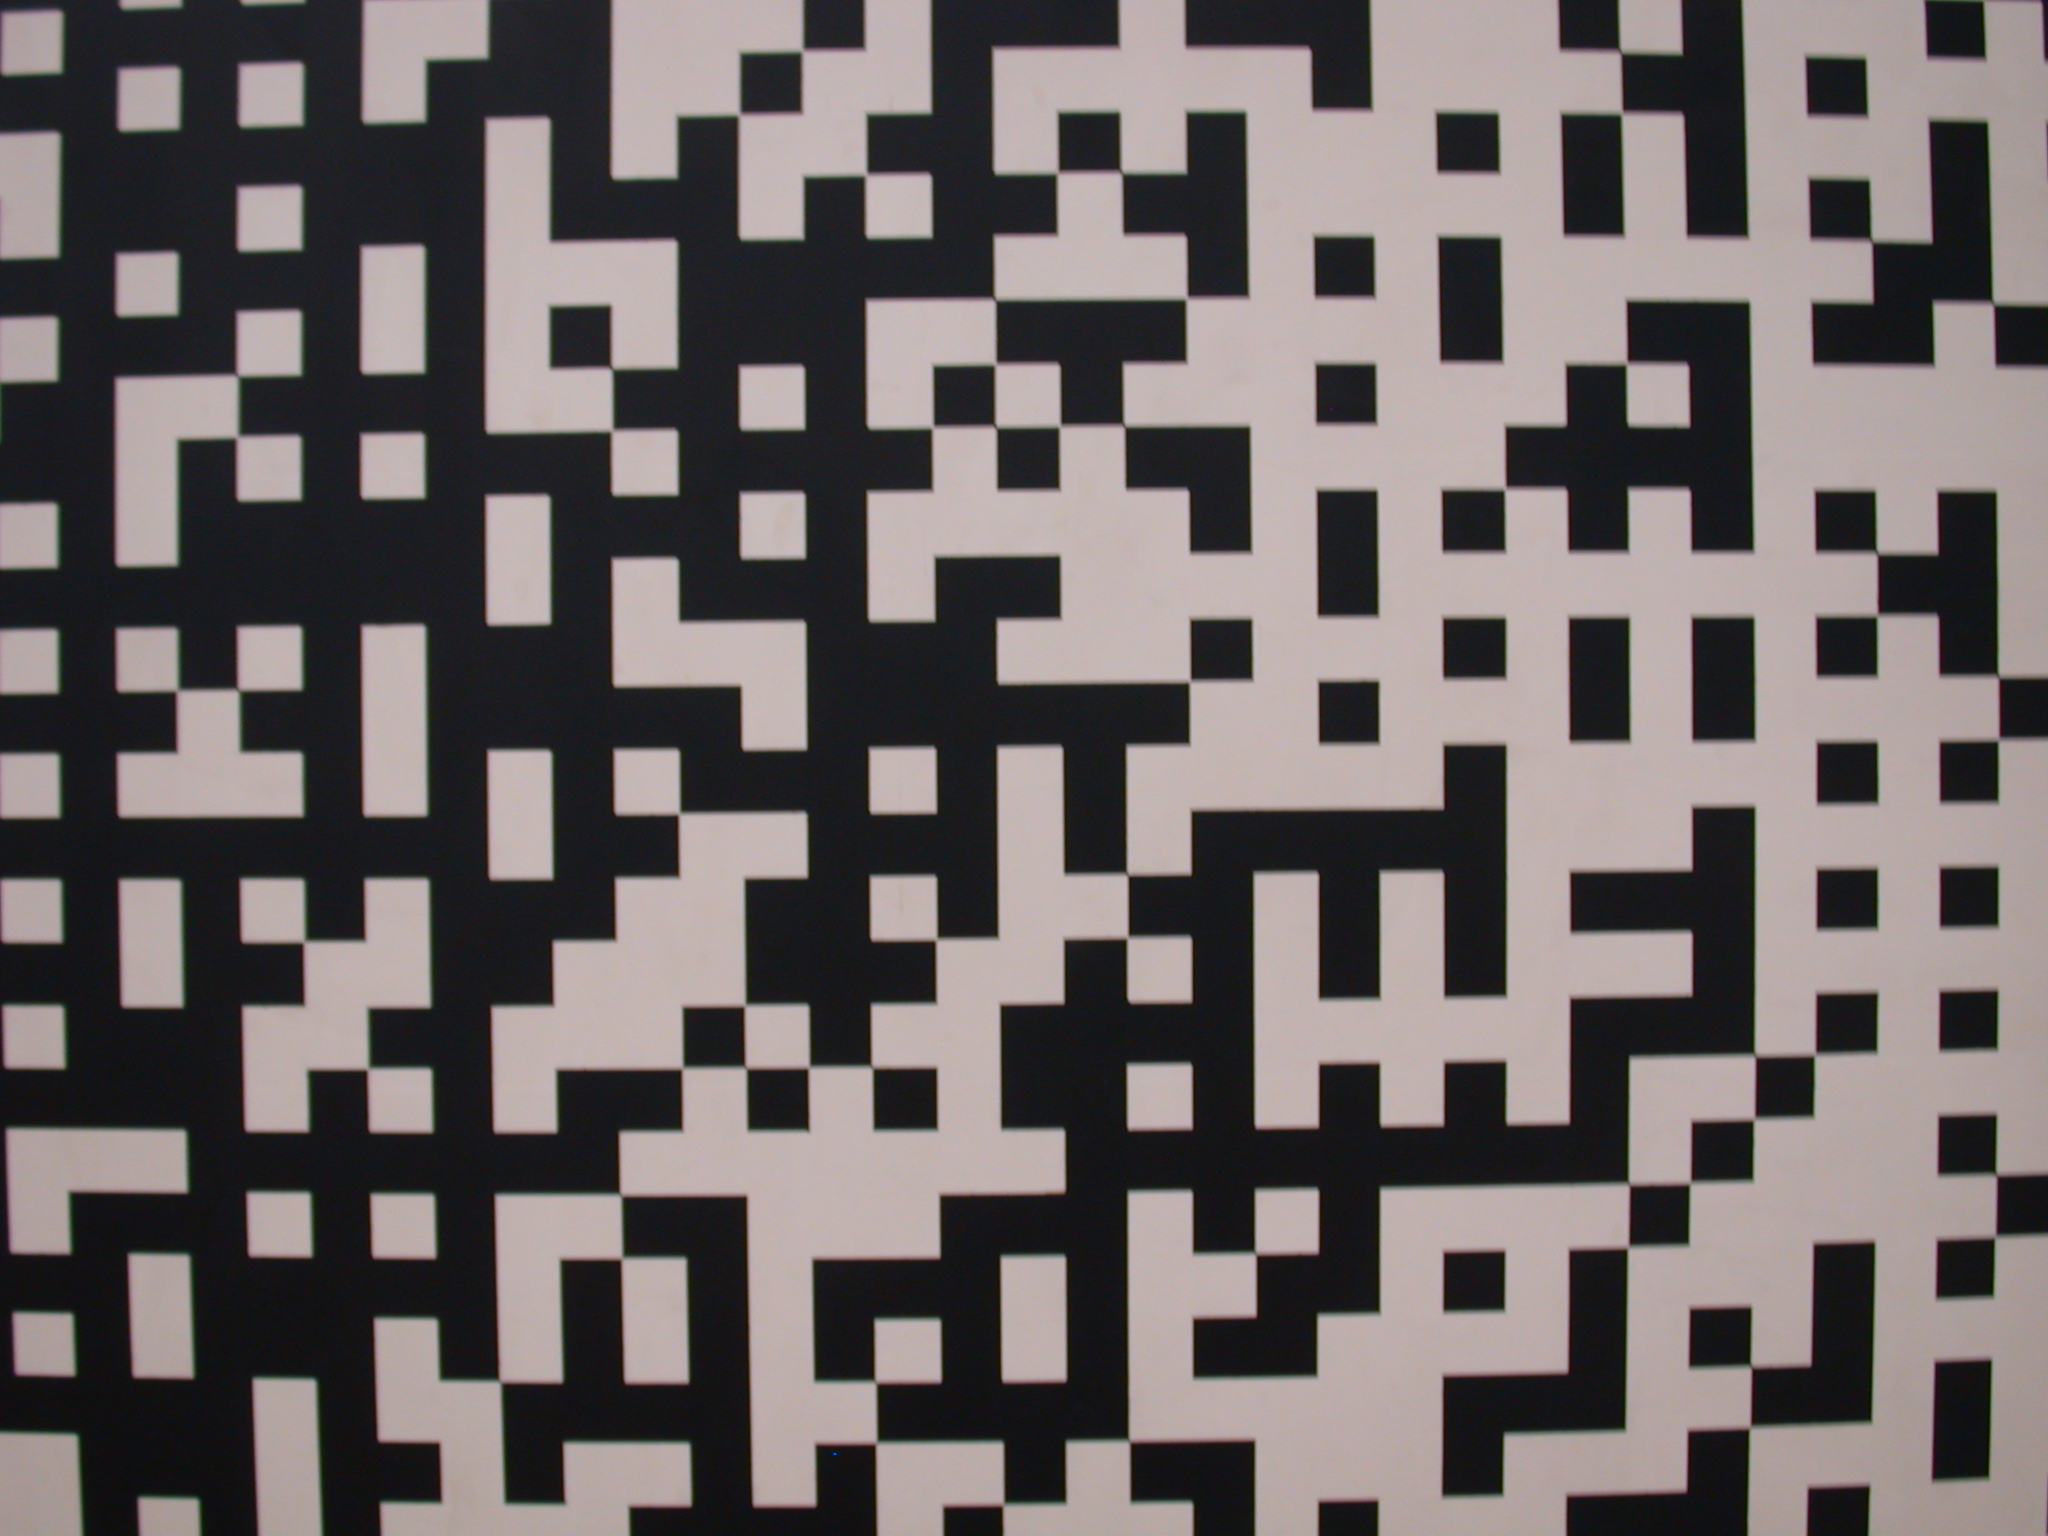 squares grid black and white pattern